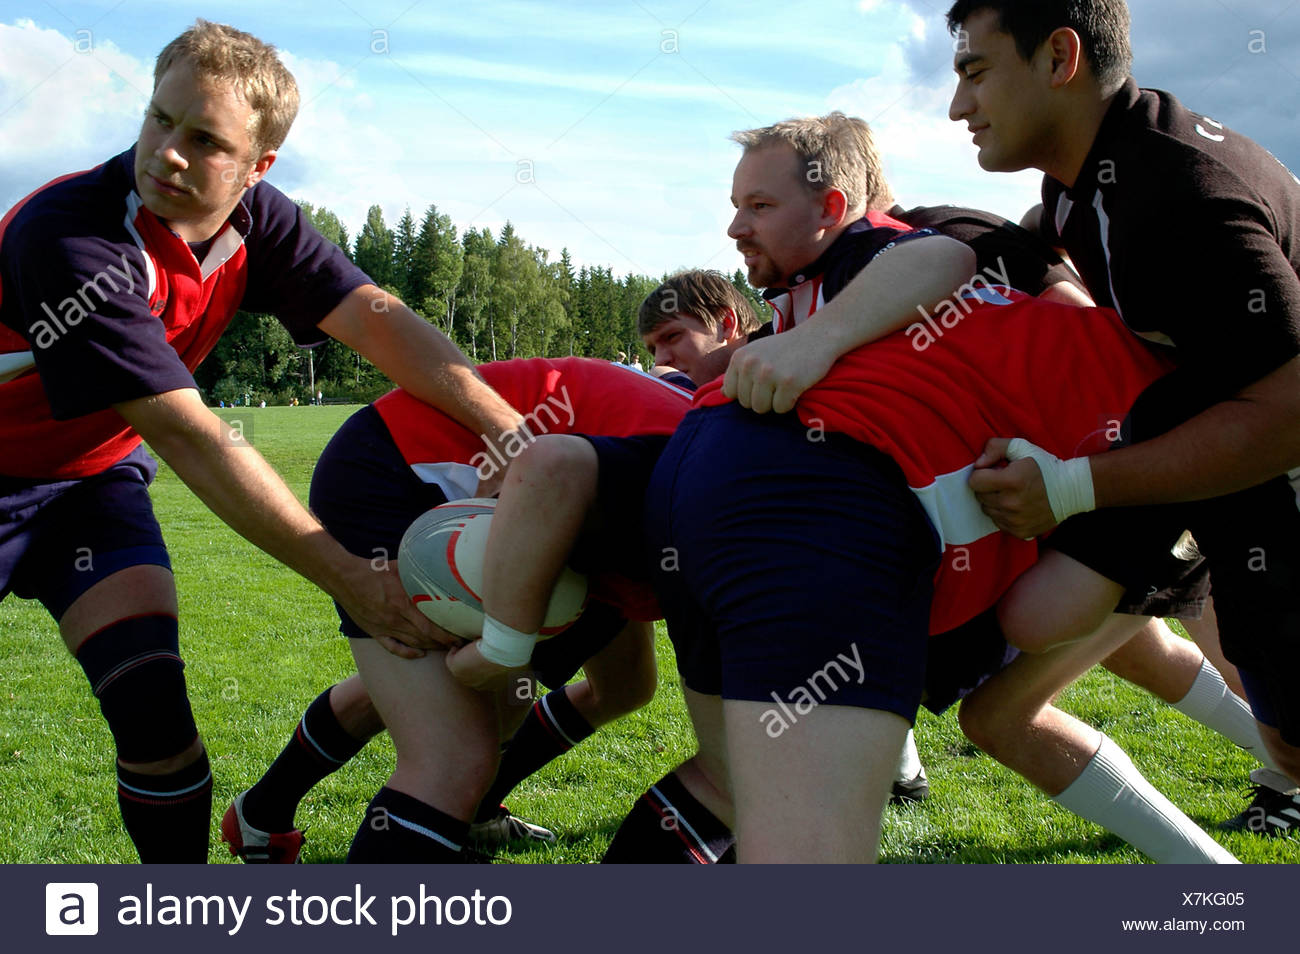 Side view of rugby players in action against the trees and sky - Stock Image